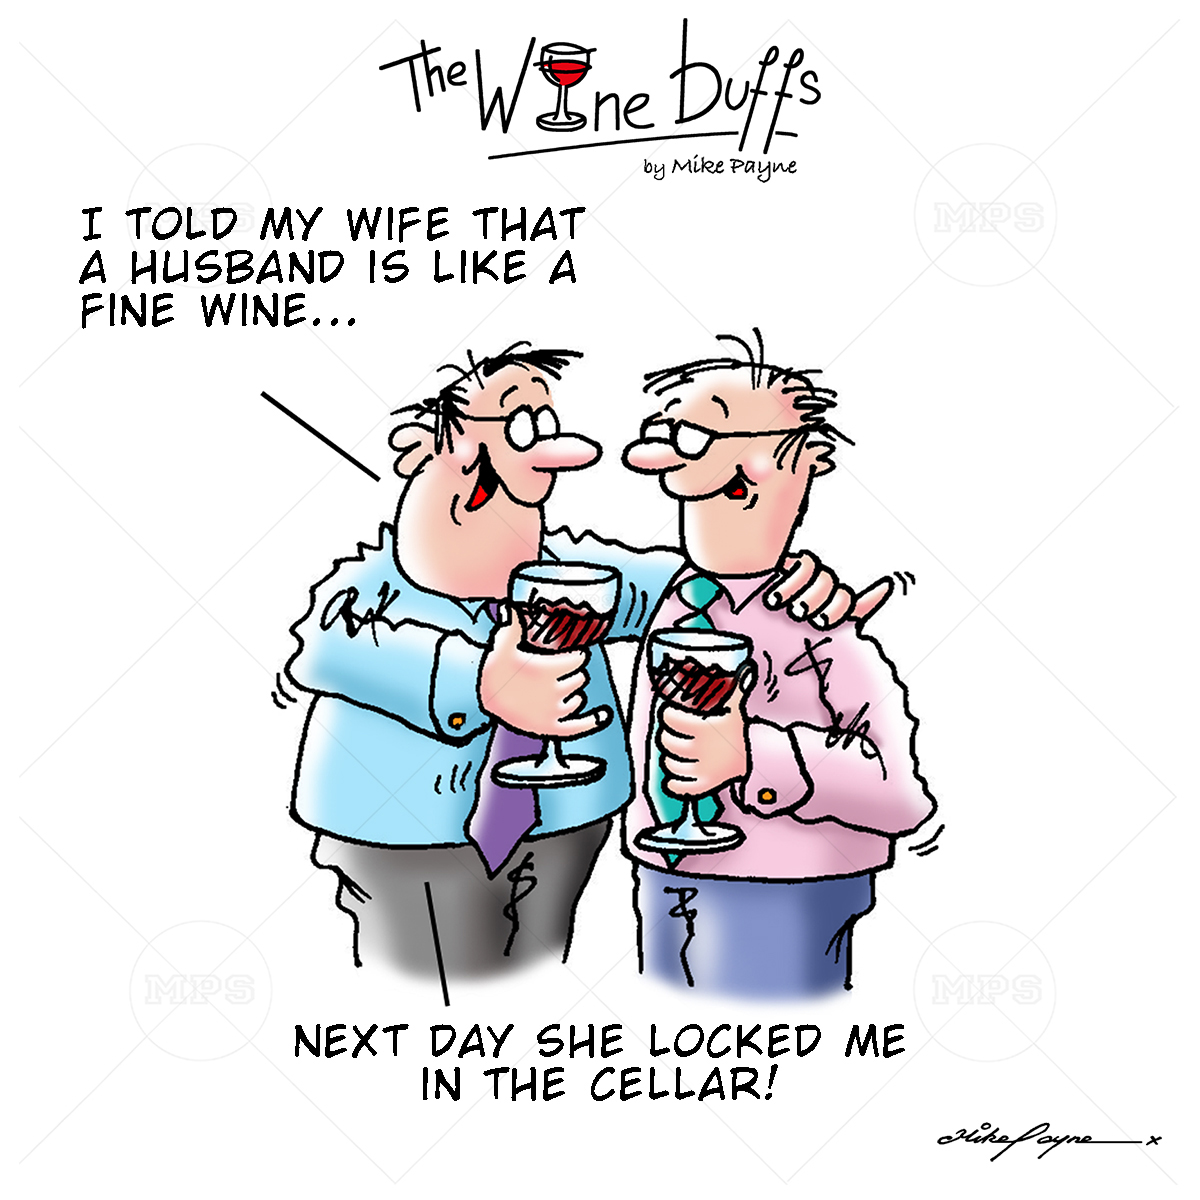 Wine Buffs Cartoon 017